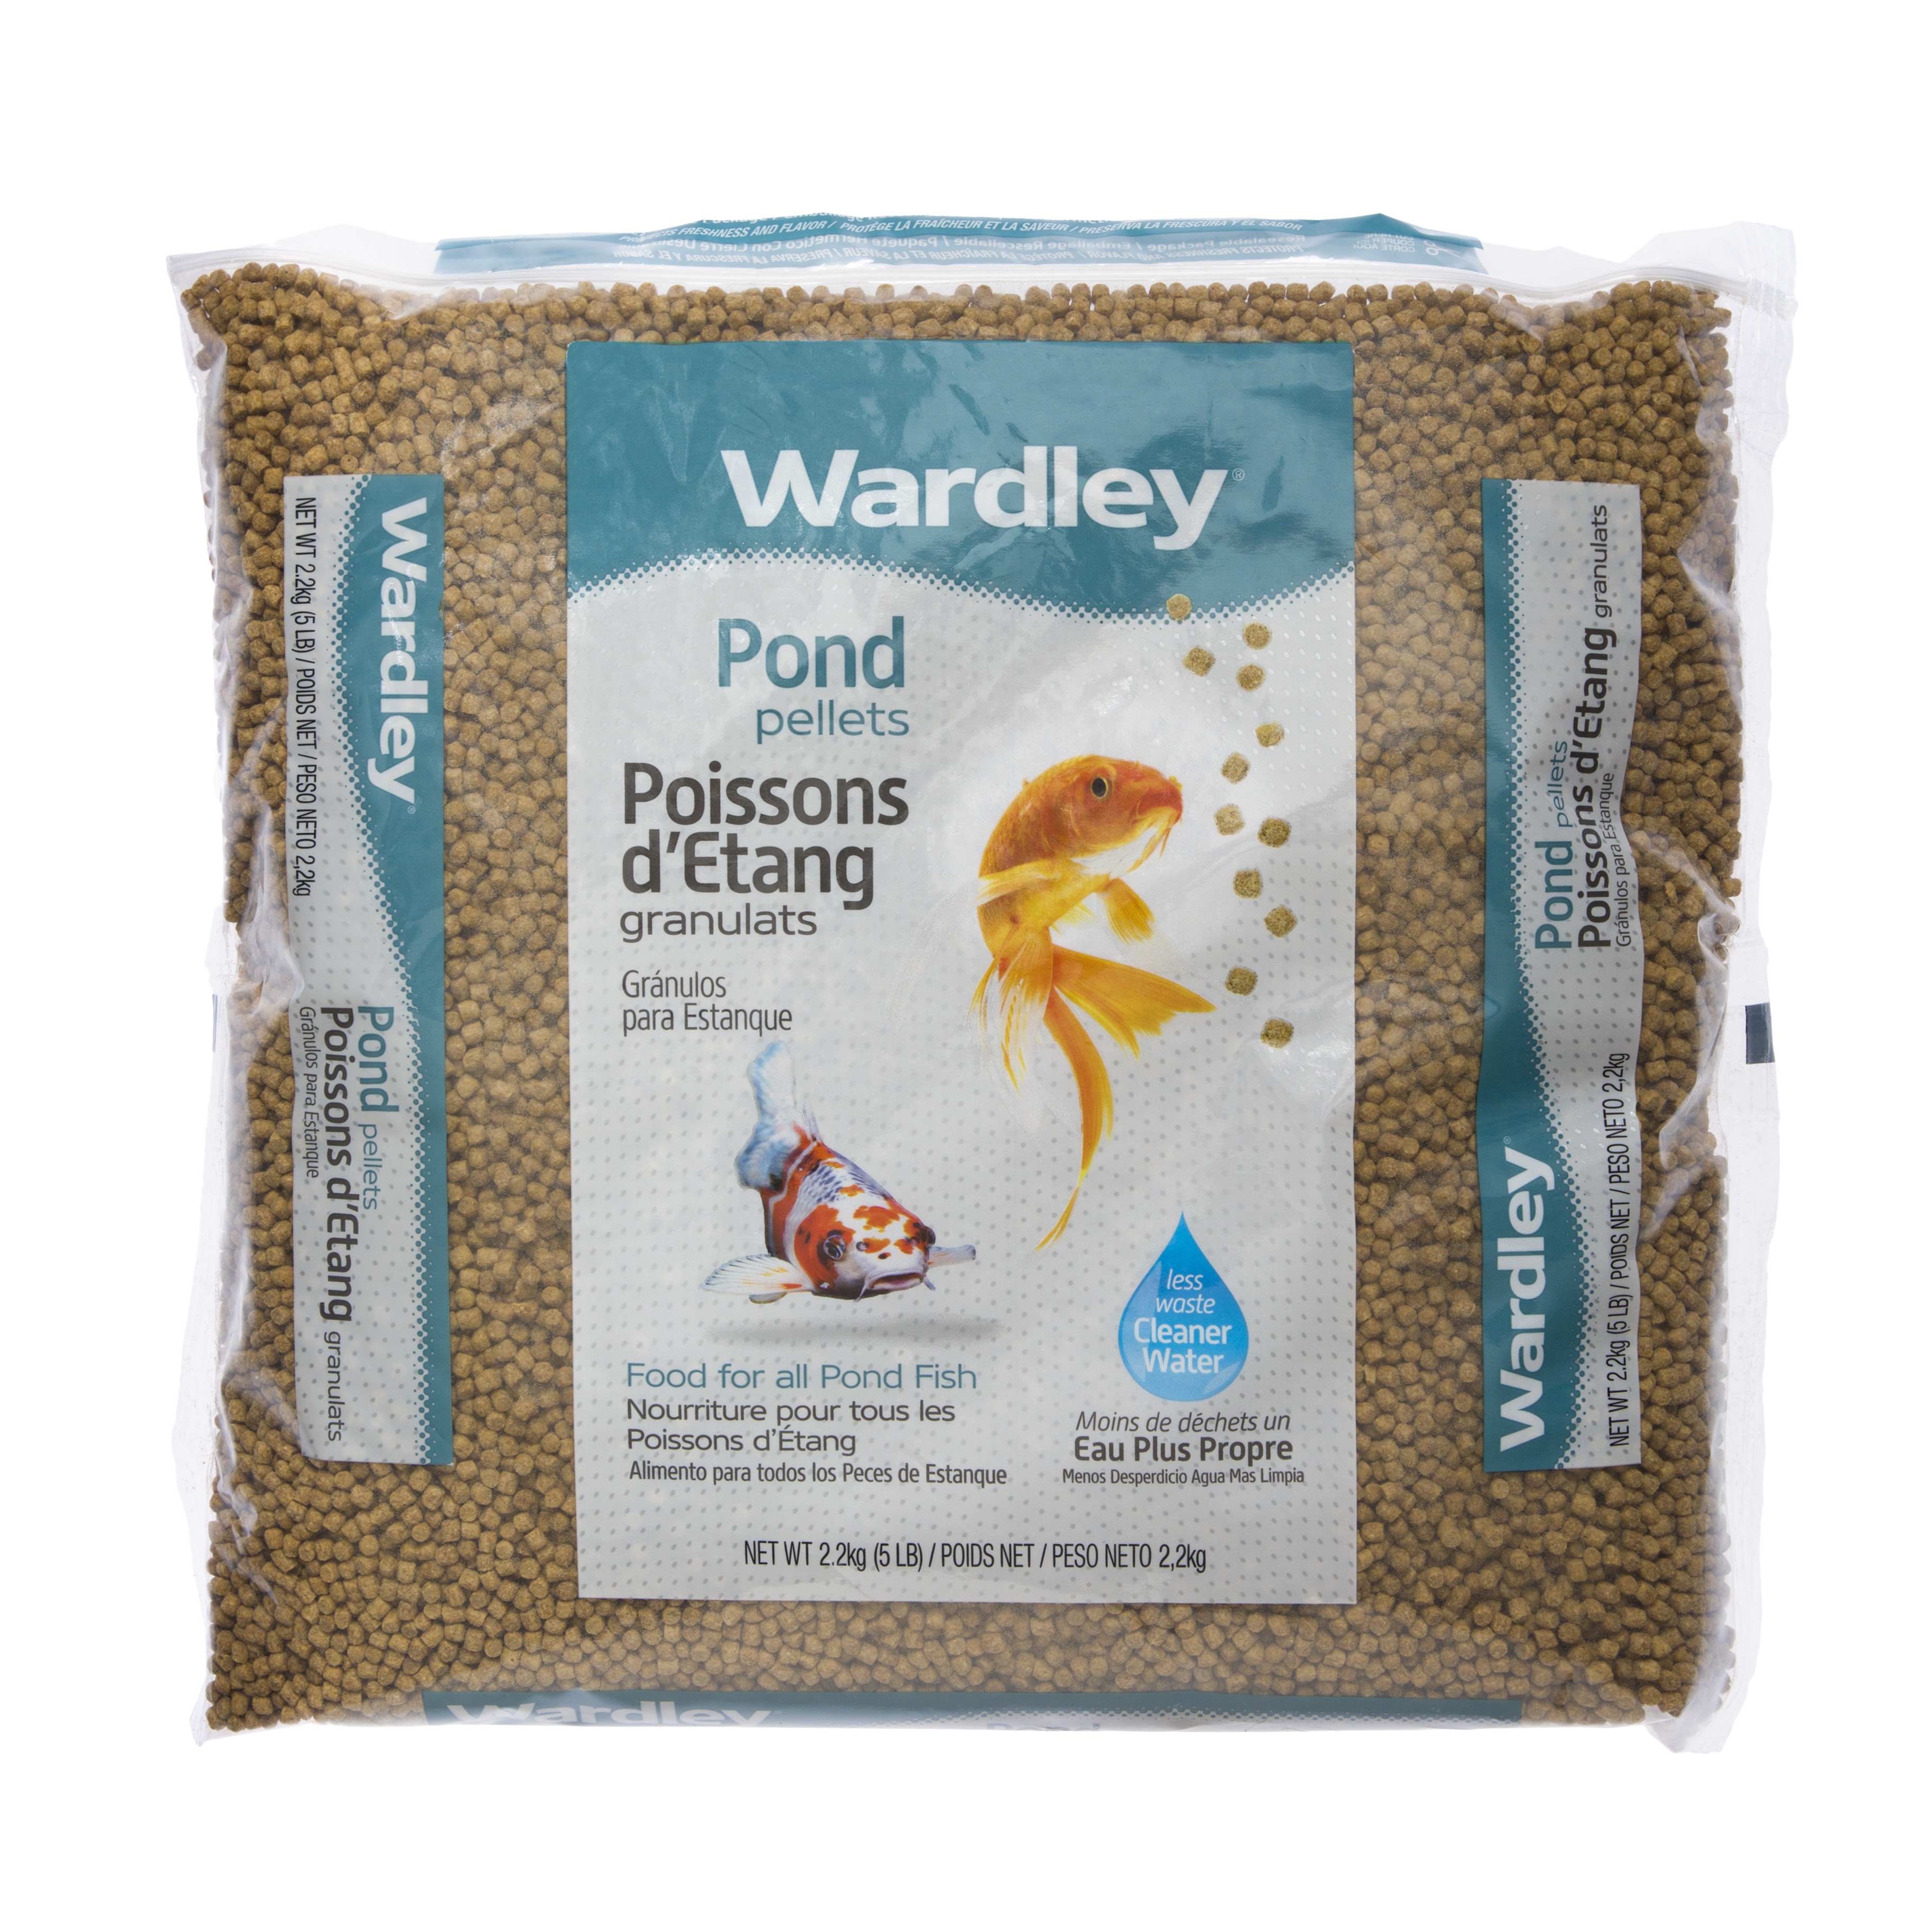 Wardley Pond Pellets Fish Food, 5lbs